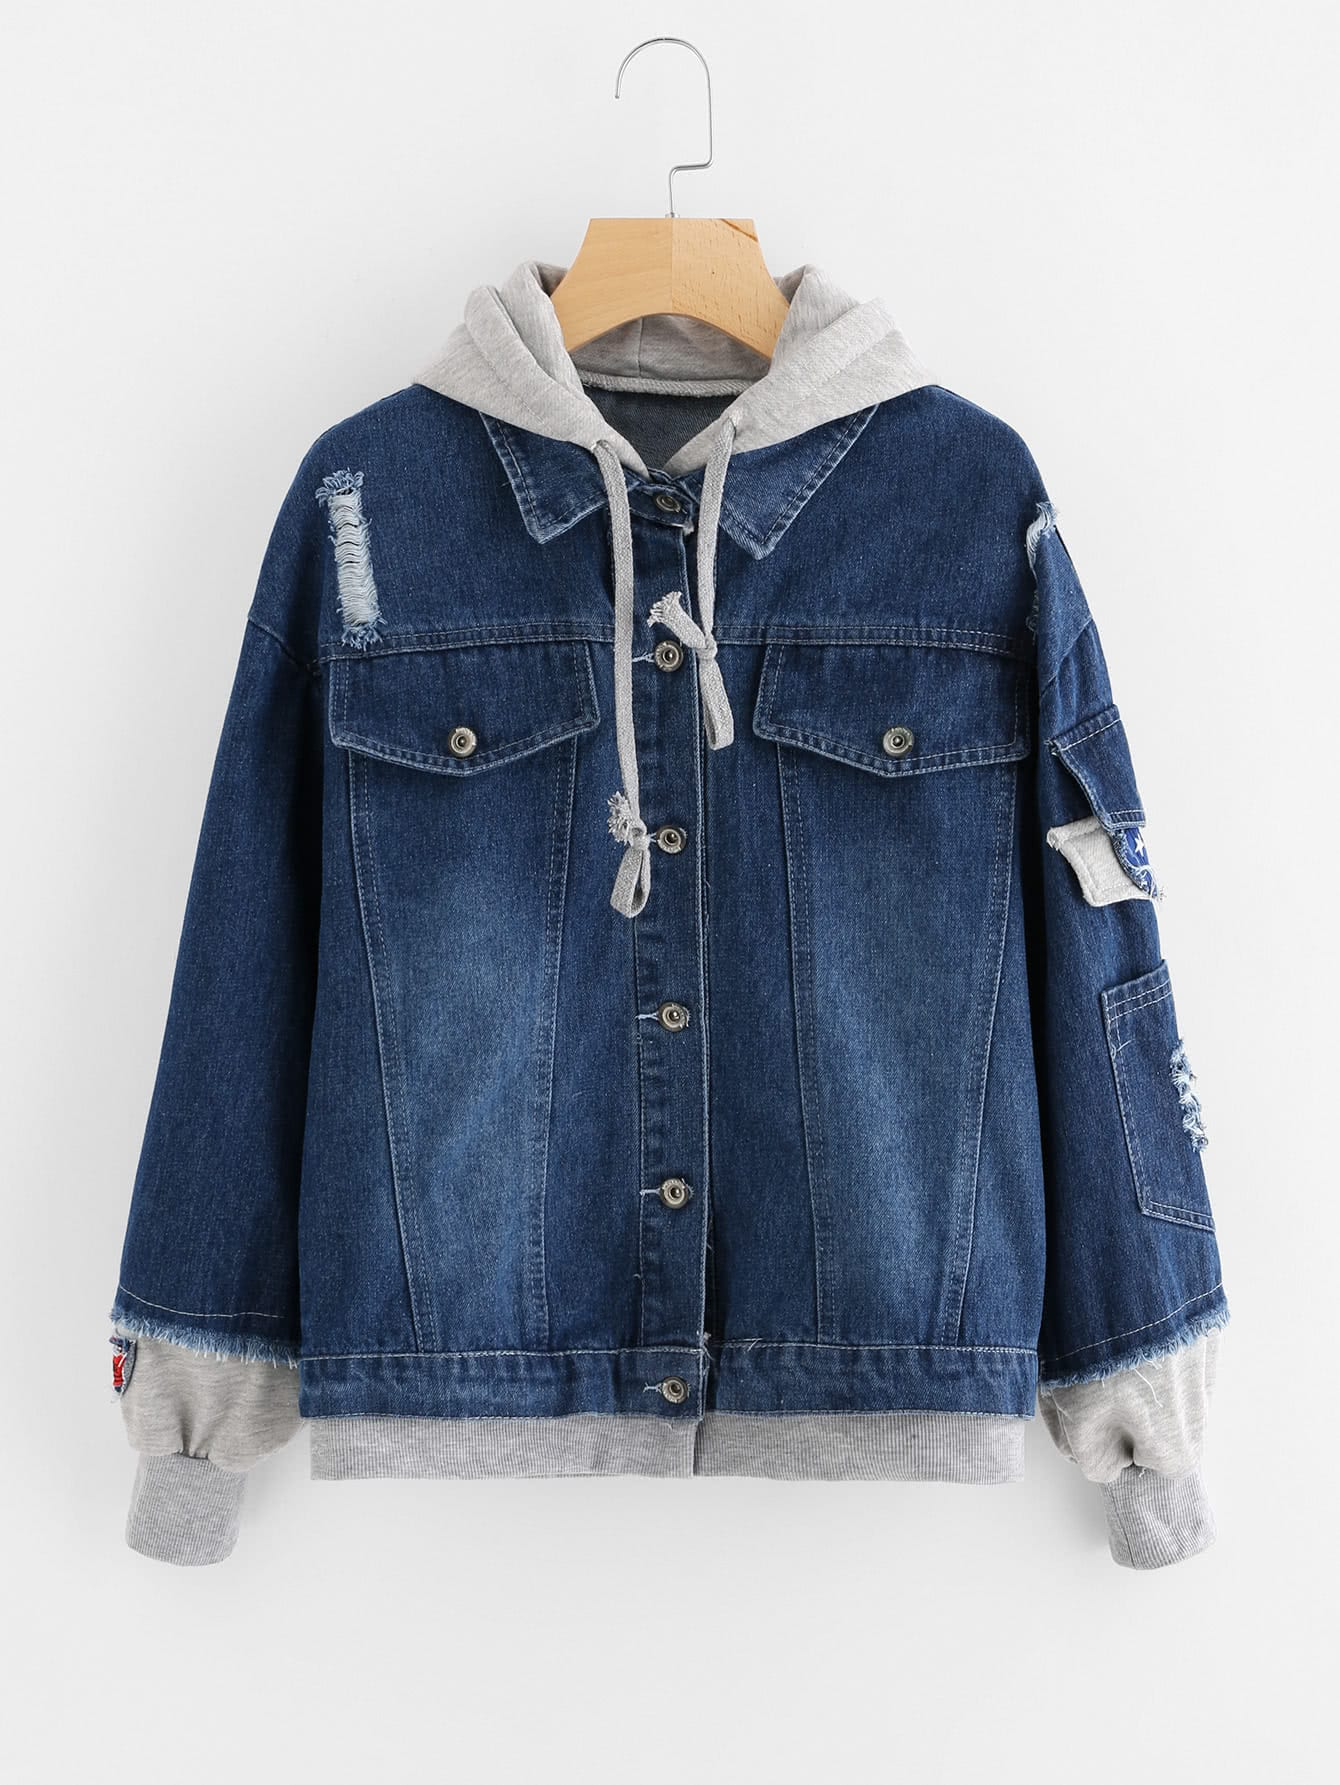 2 In 1 Hooded Denim Jacket champion hooded jacket